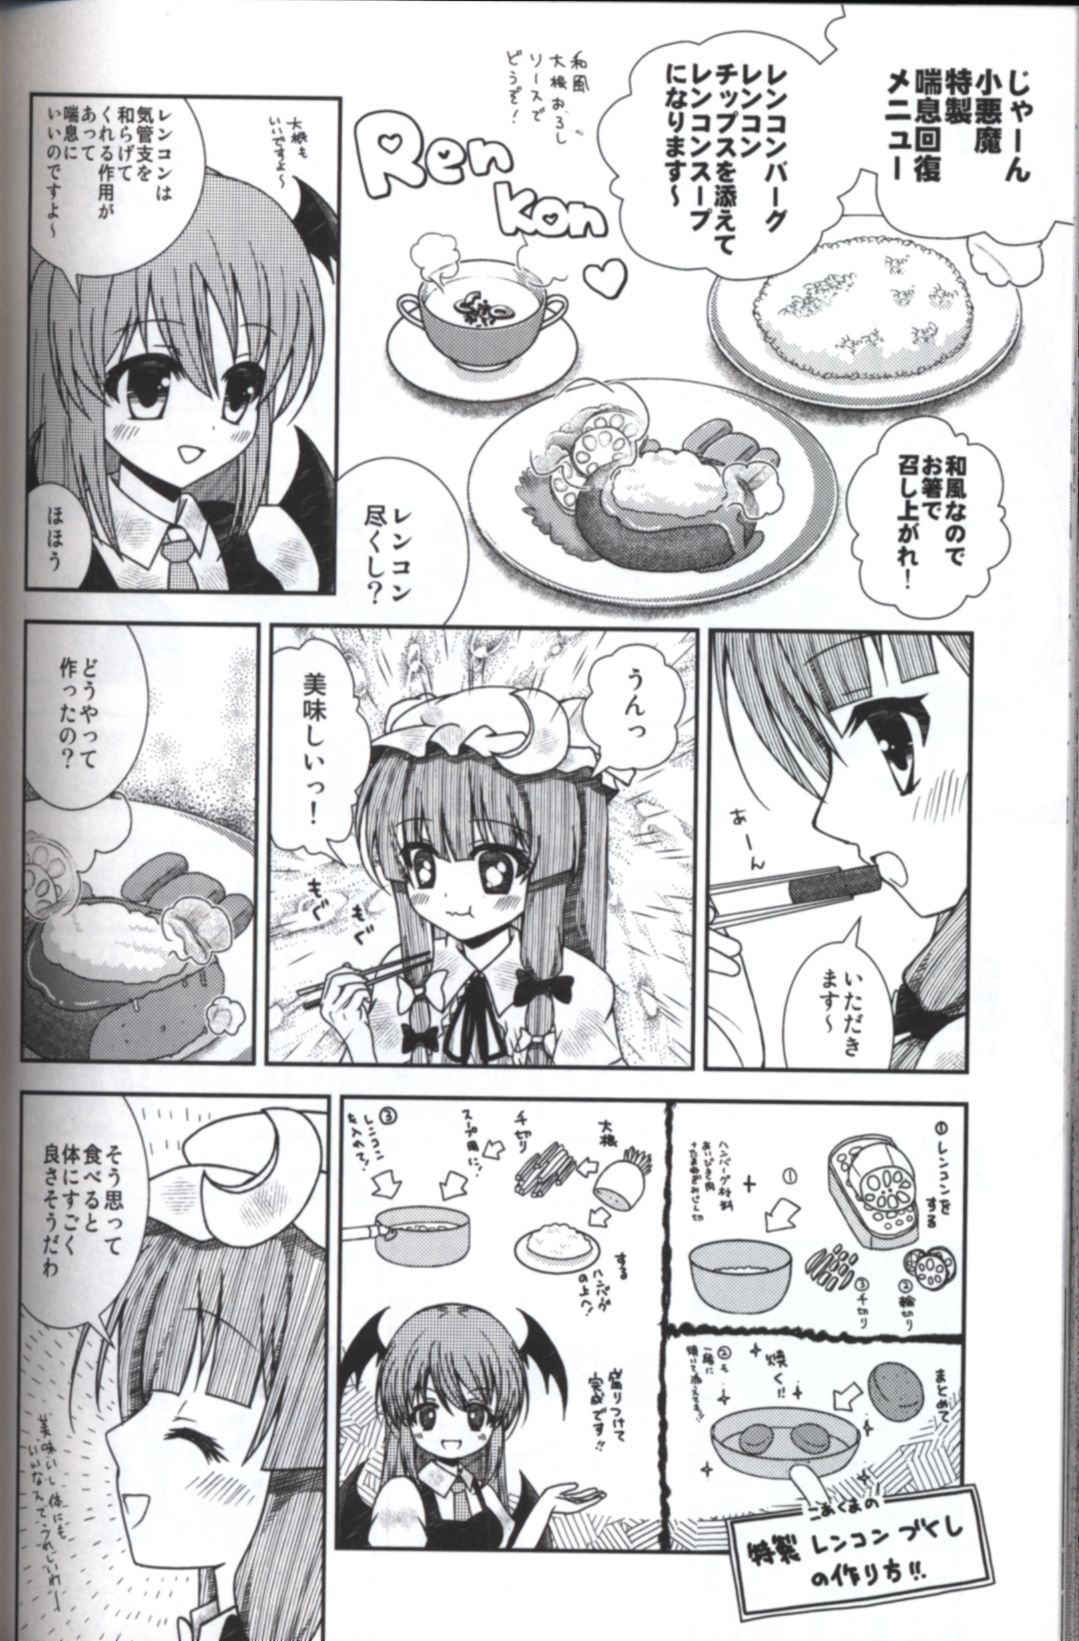 Doujinshi - Touhou Project / Patchouli Knowledge (パチュリーのズボラ飯 3) / 168